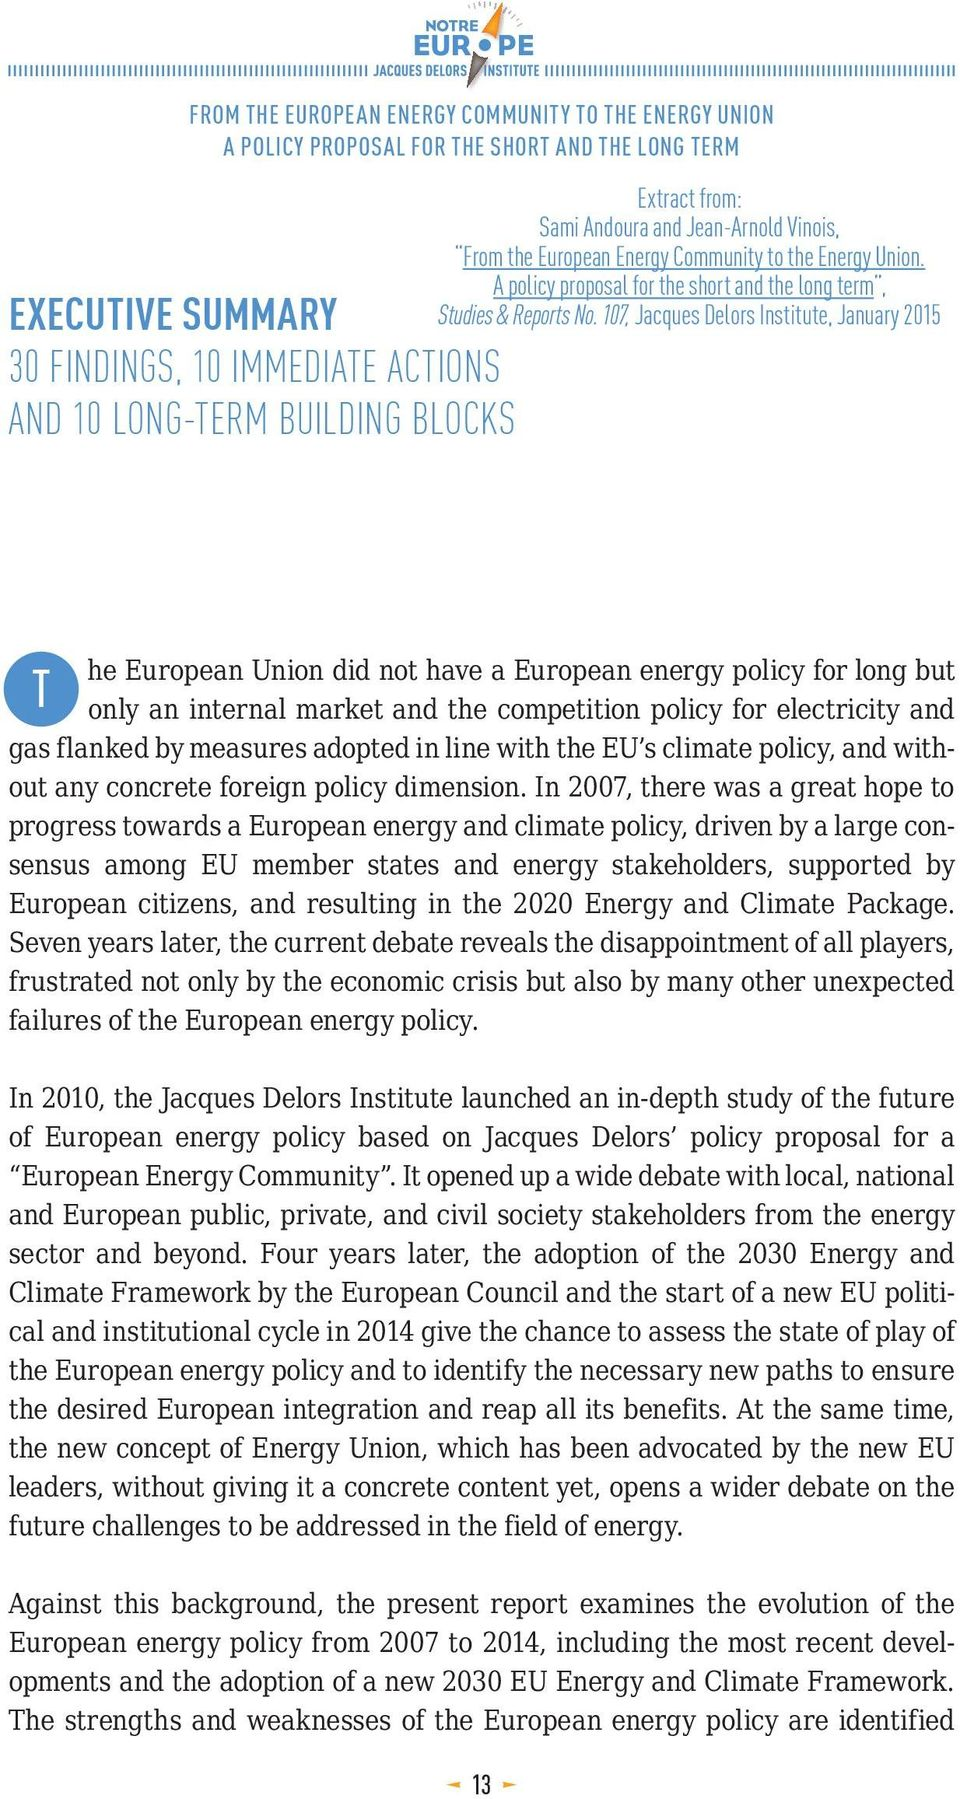 107, Jacques Delors Institute, January 2015 T he European Union did not have a European energy policy for long but only an internal market and the competition policy for electricity and gas flanked